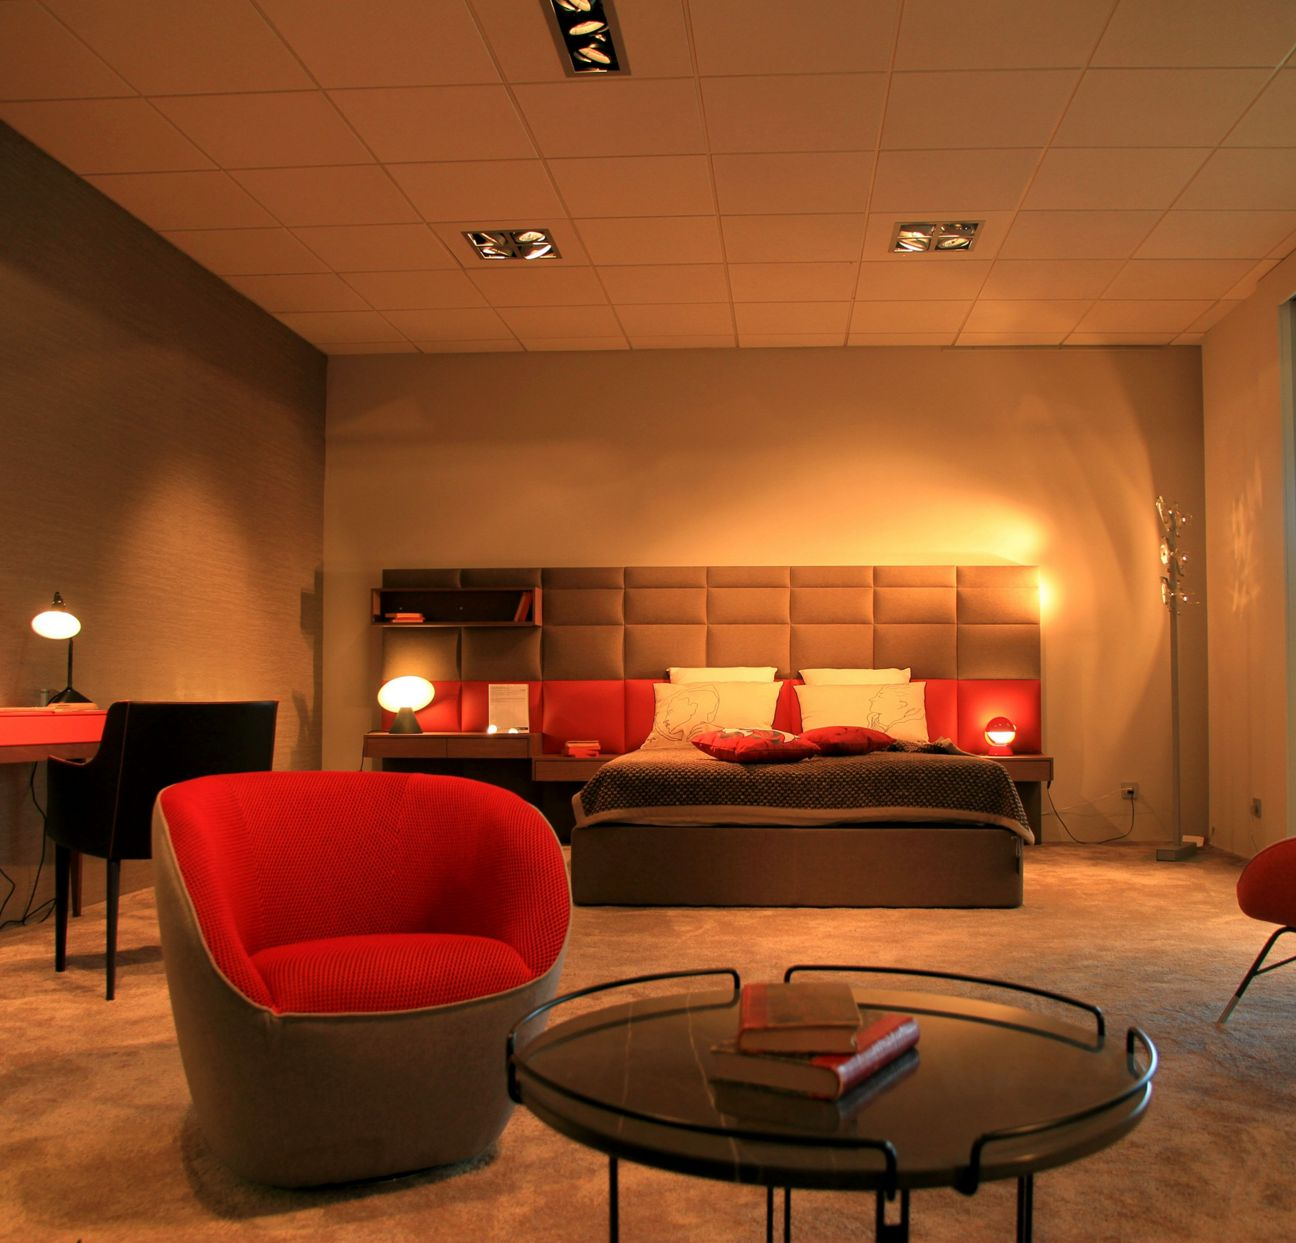 roche bobois showroom dijon quetigny 21800. Black Bedroom Furniture Sets. Home Design Ideas